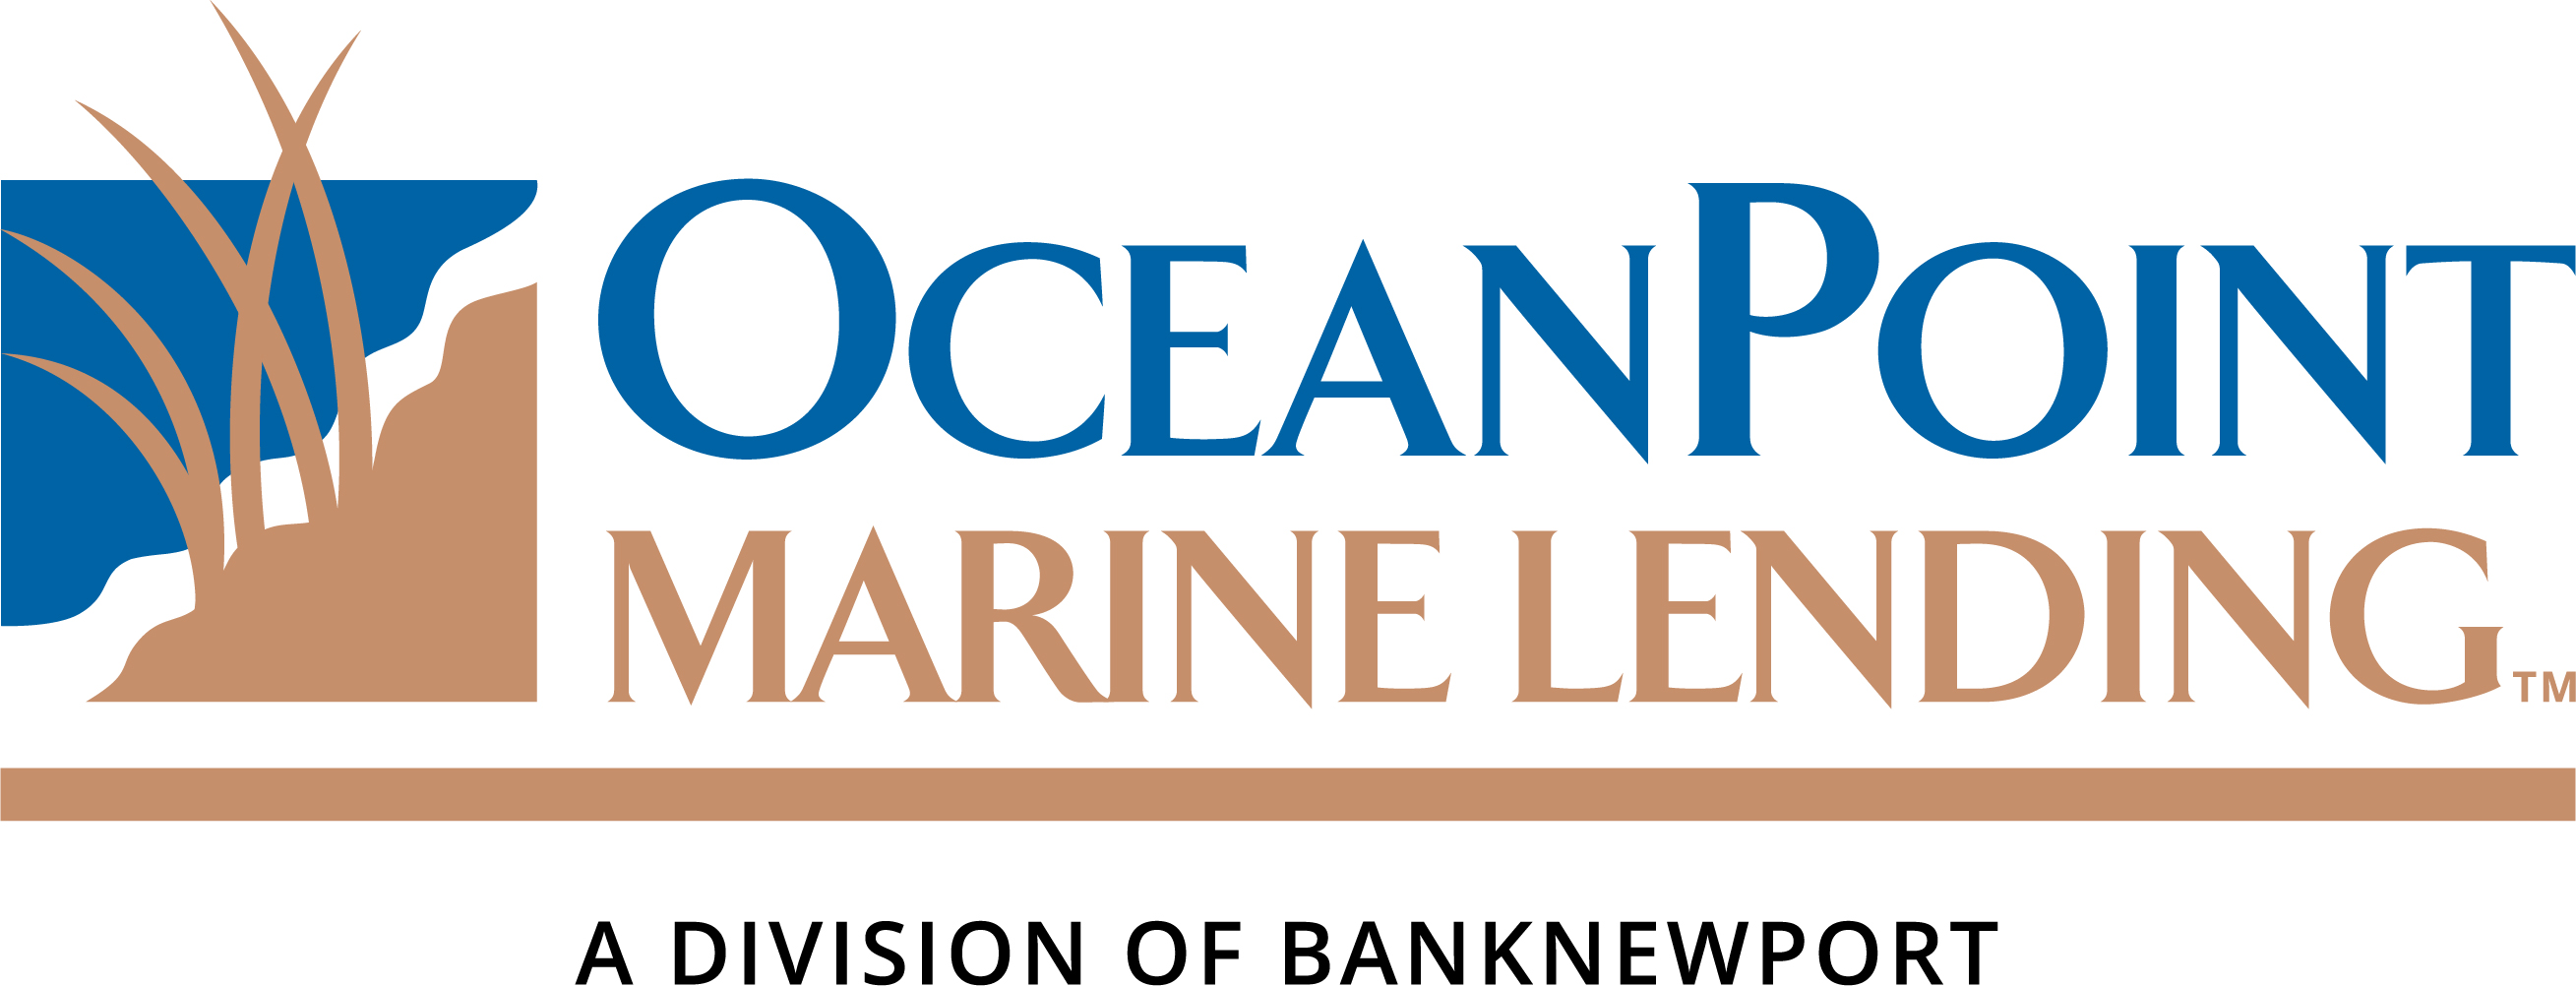 OceanPoint Marine Lending A Division of BankNewport Logo